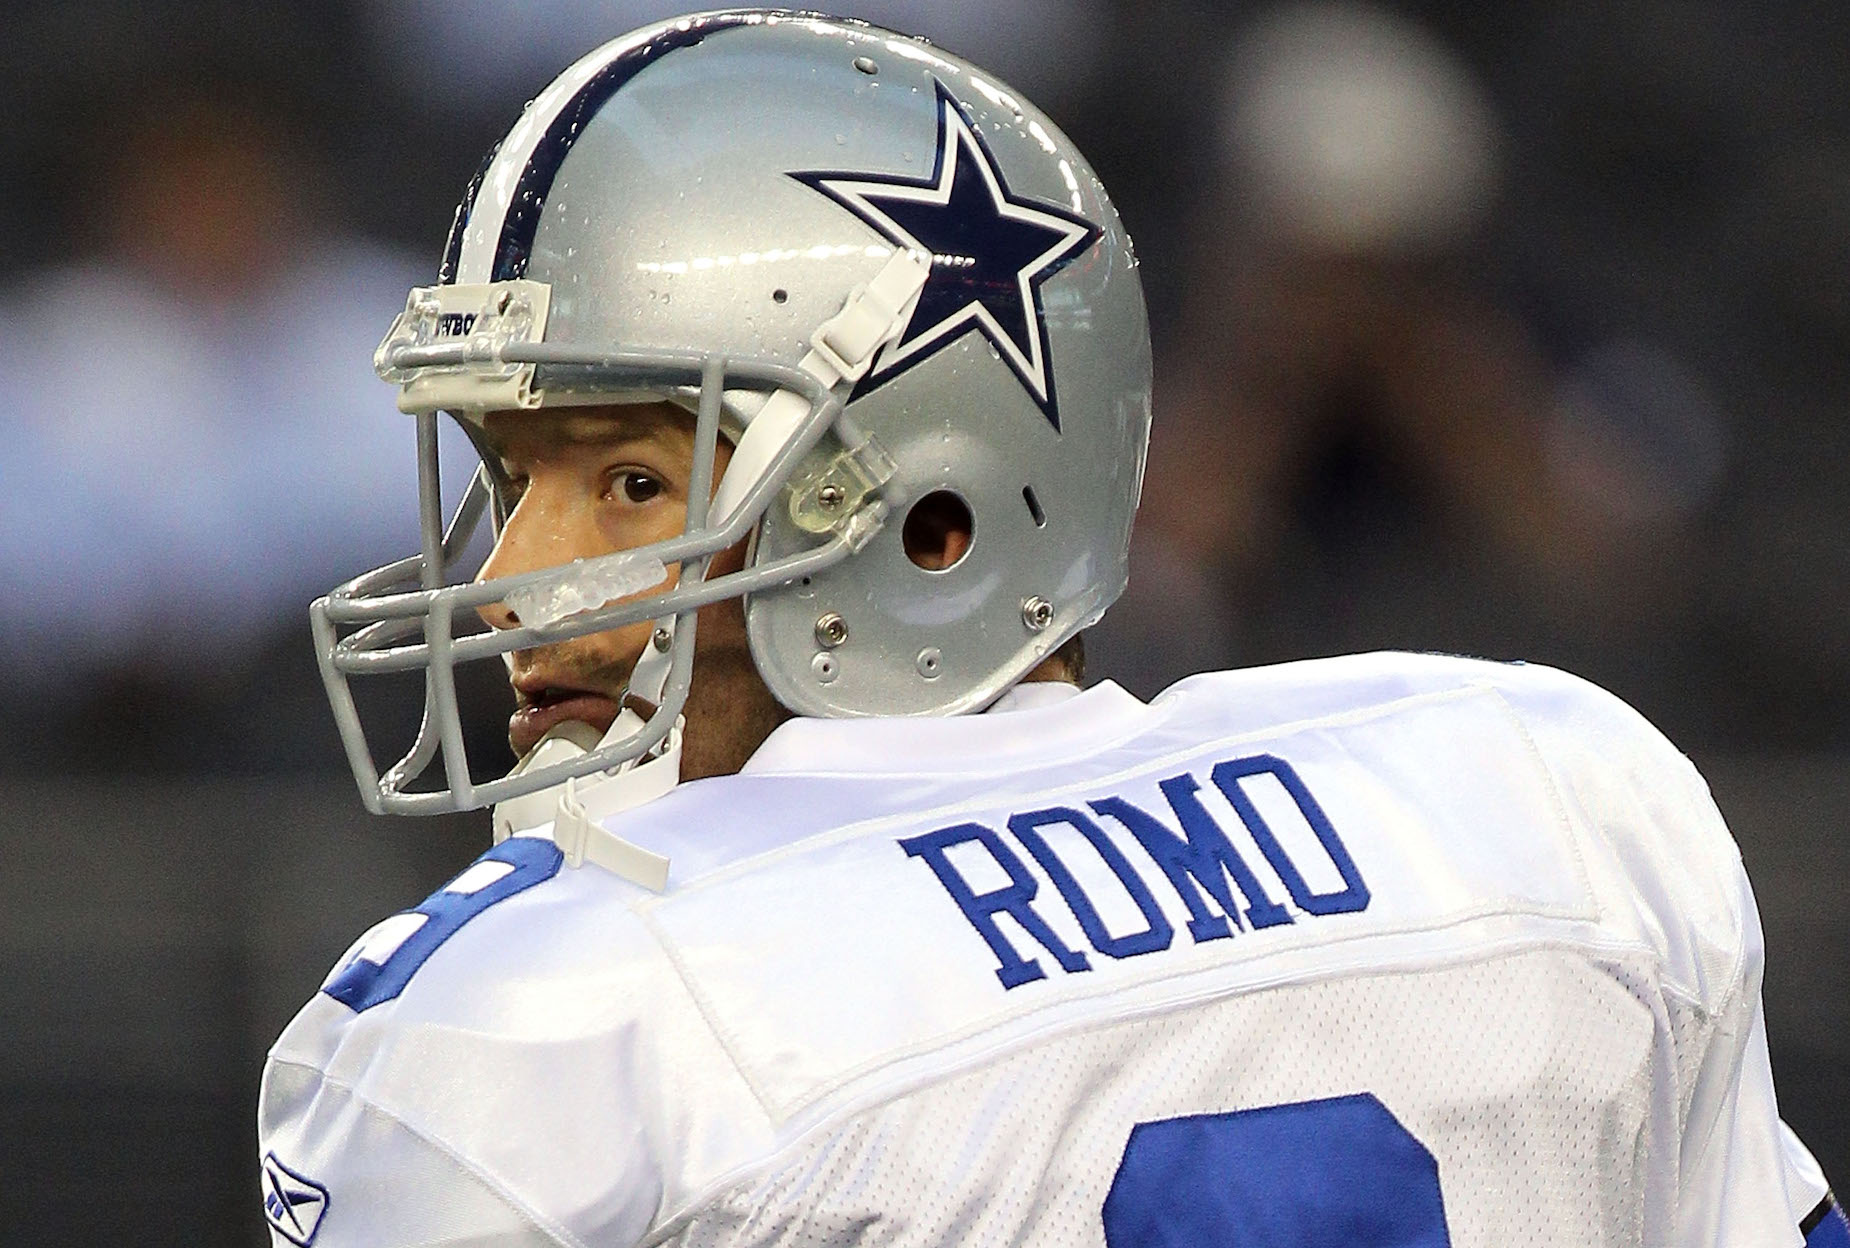 Tony Romo Almost Ruined His Dallas Cowboys Career Before It Began by Taking a 'Pretty Stupid' Risk